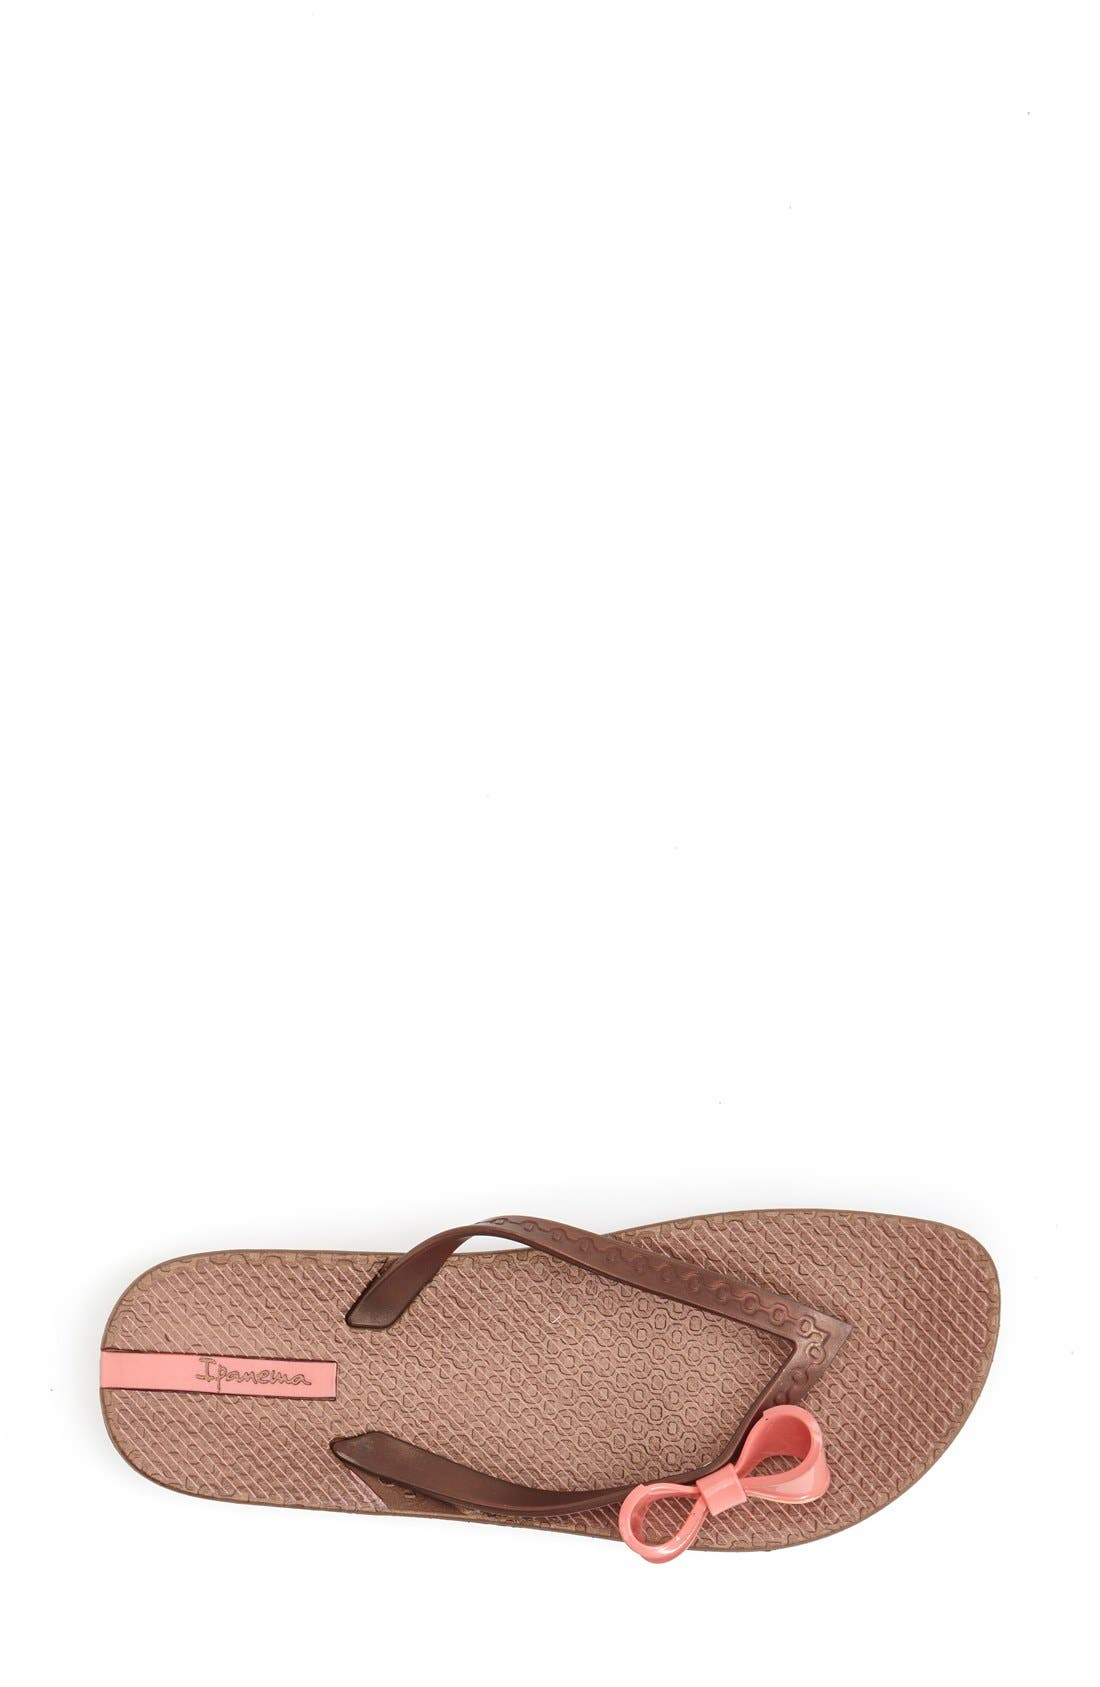 Alternate Image 3  - Ipanema 'Neo Clara' Flip Flop (Women)